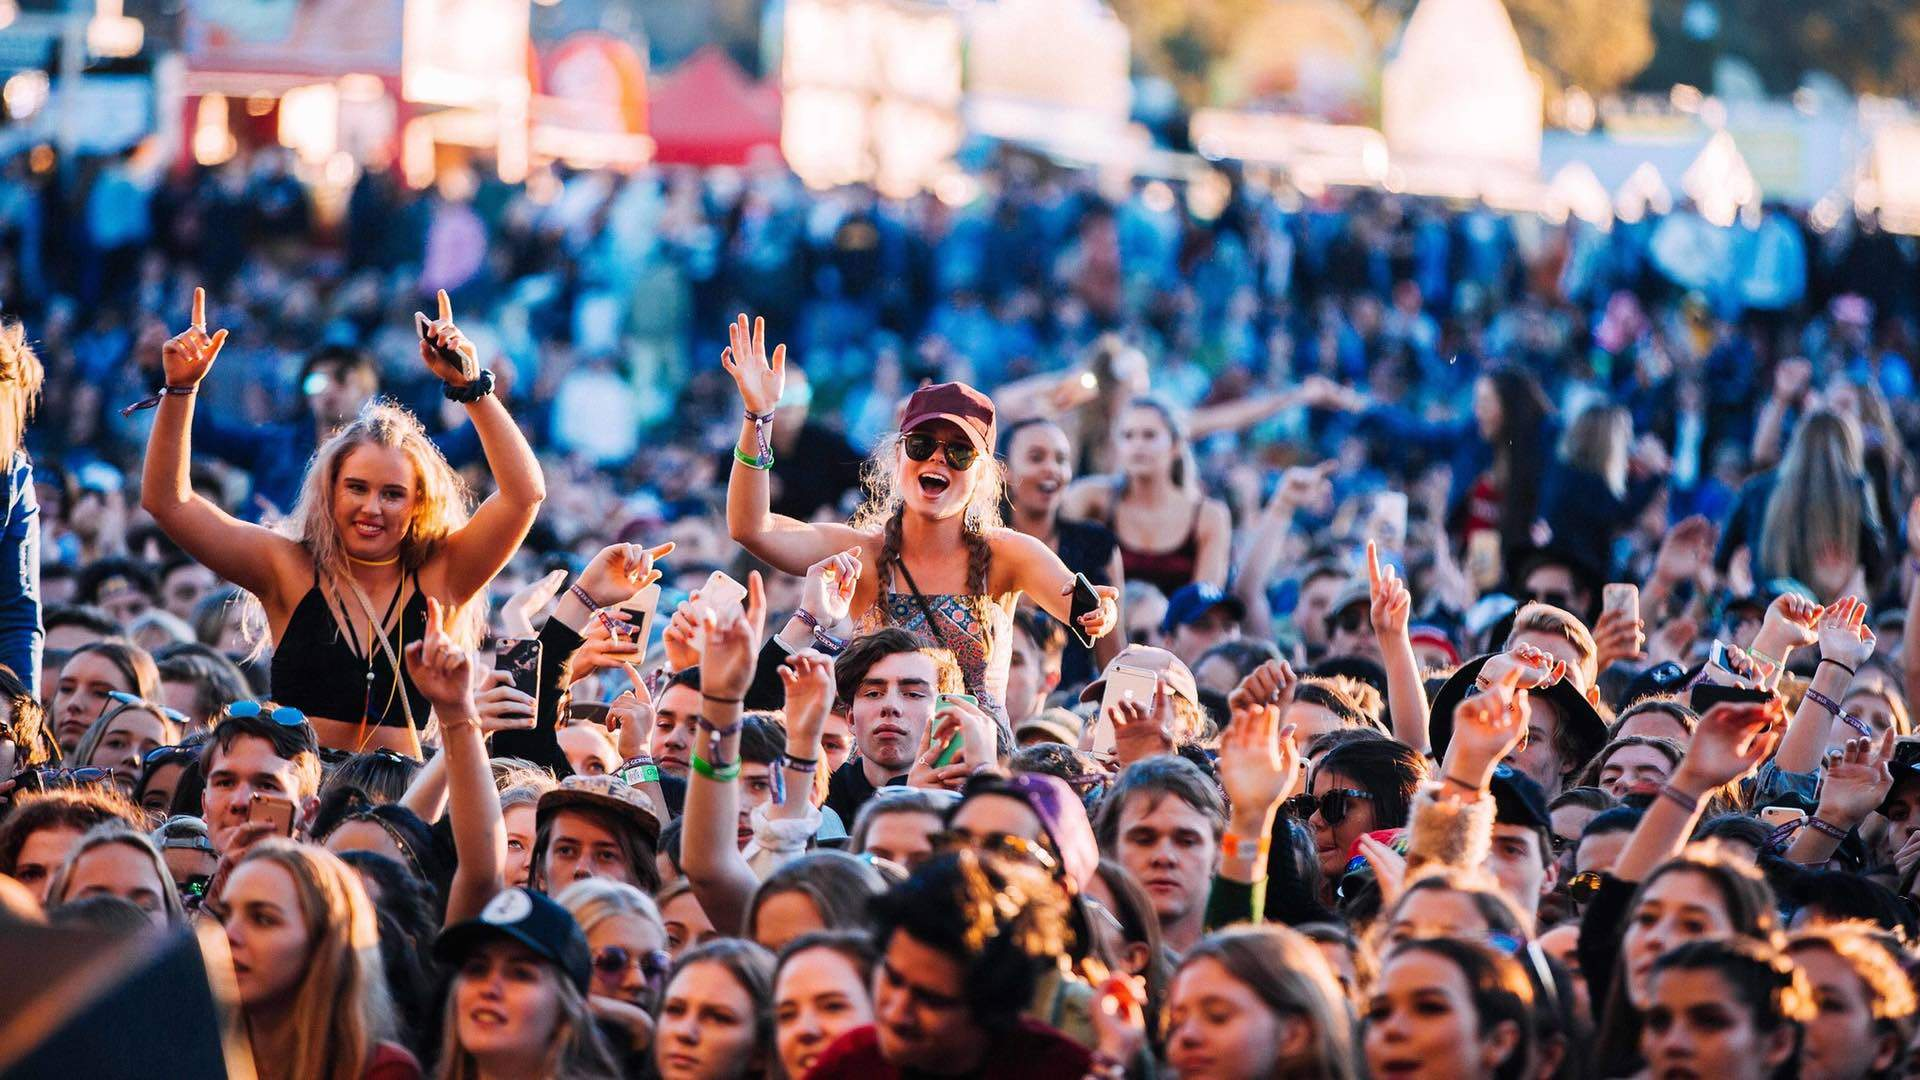 Groovin' The Moo Canberra Will Host Australia's Second Pill-Testing Trial